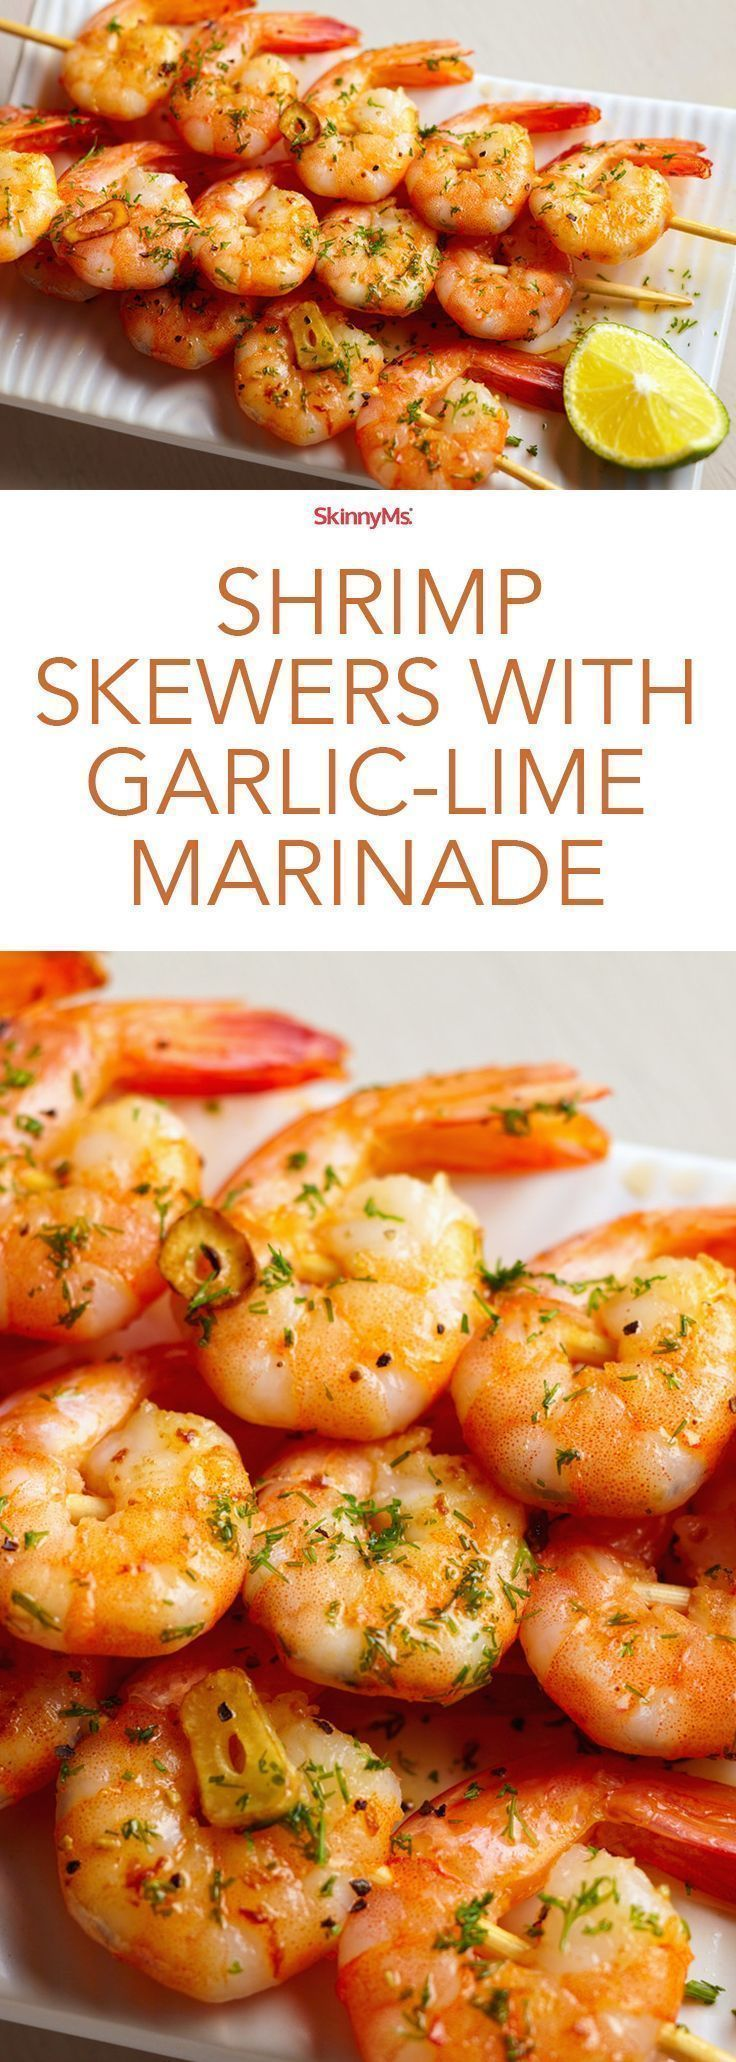 Shrimp Skewers with Garlic-Lime Marinade - Juicy, succulent perfection! #shrimp #summer #cleaneating